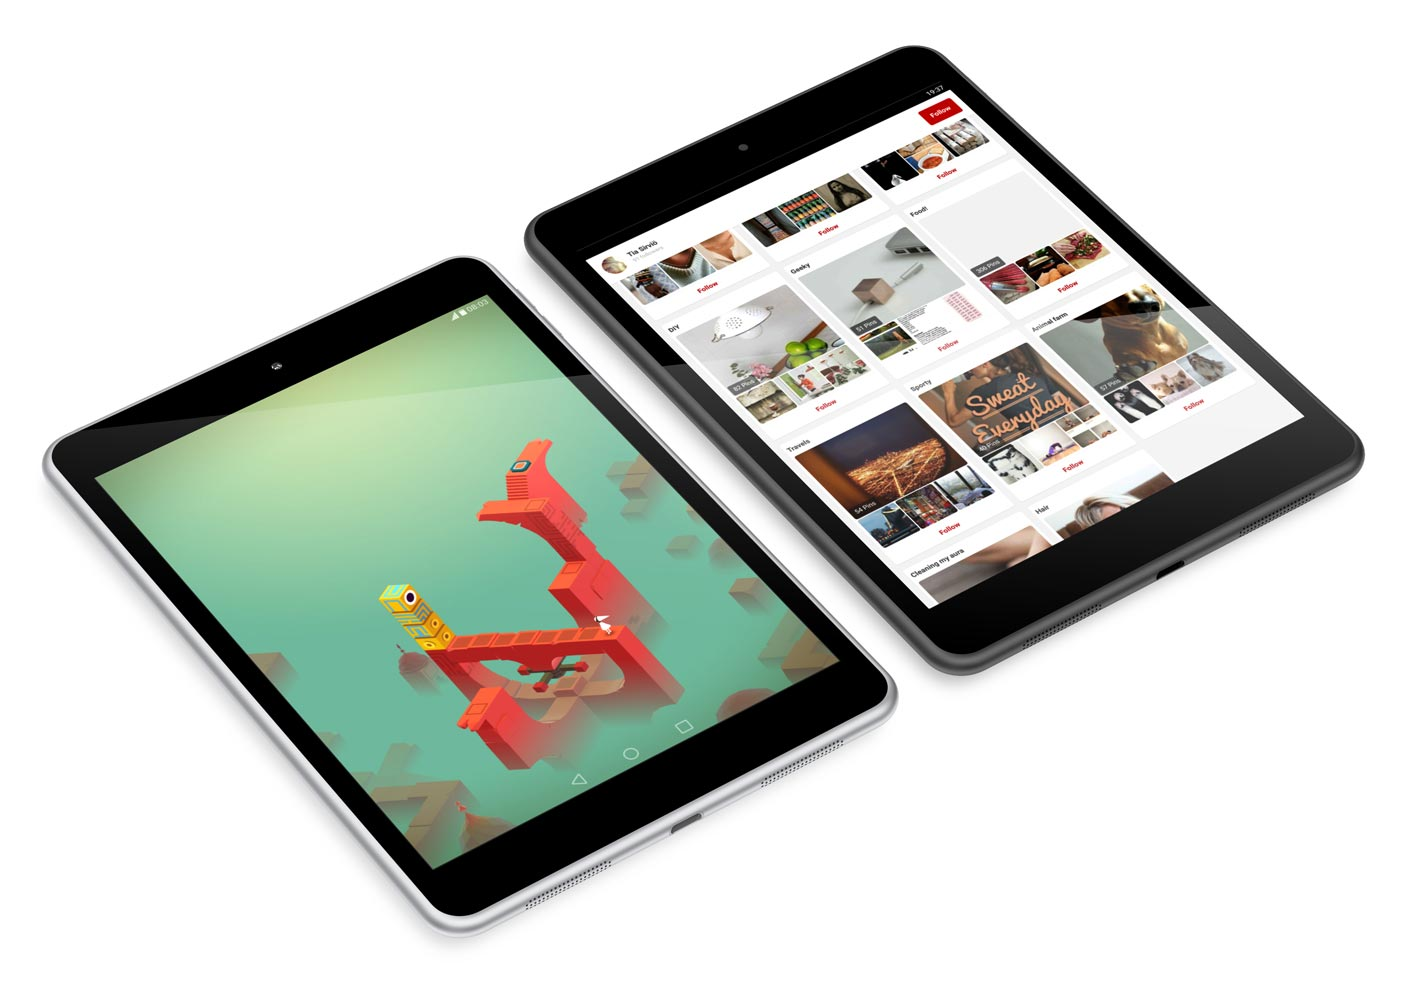 The Nokia N1 tablet seems to be a better performer than Apple and Samsung compact slates